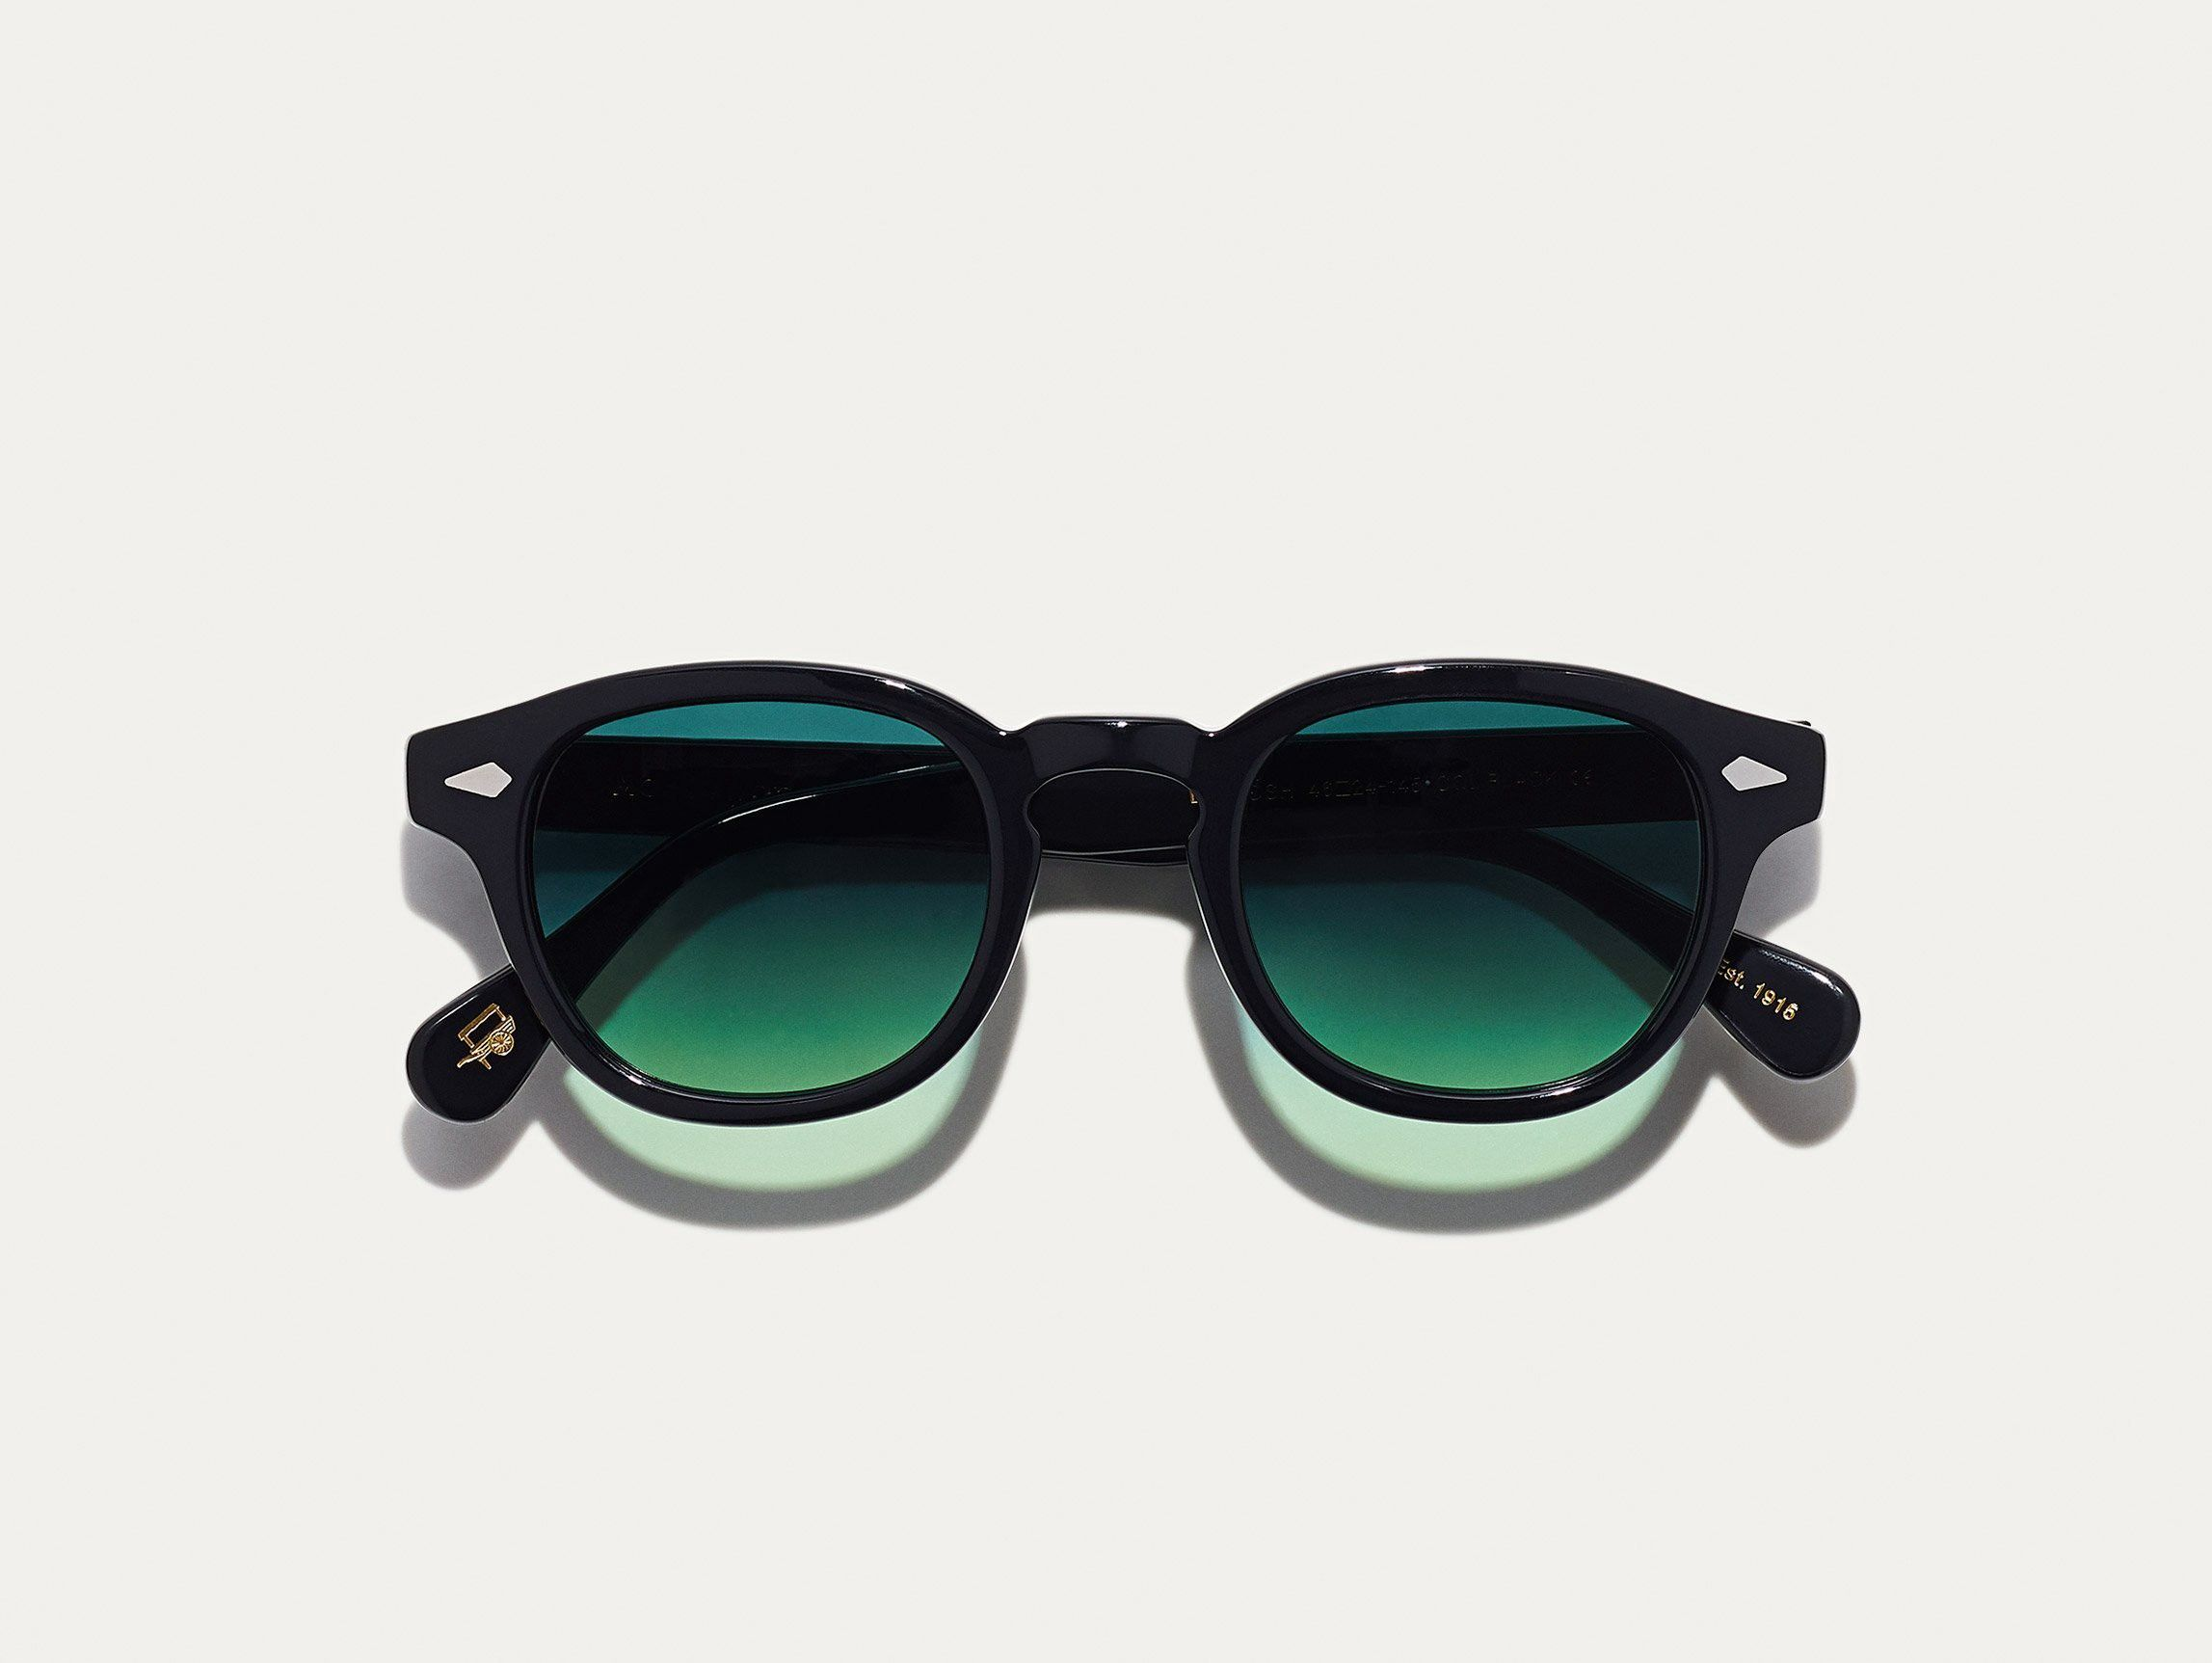 27d7c2a7c43 Moscot Lemtosh Black With Forest Wood Tint - 44 | Products | Wood ...